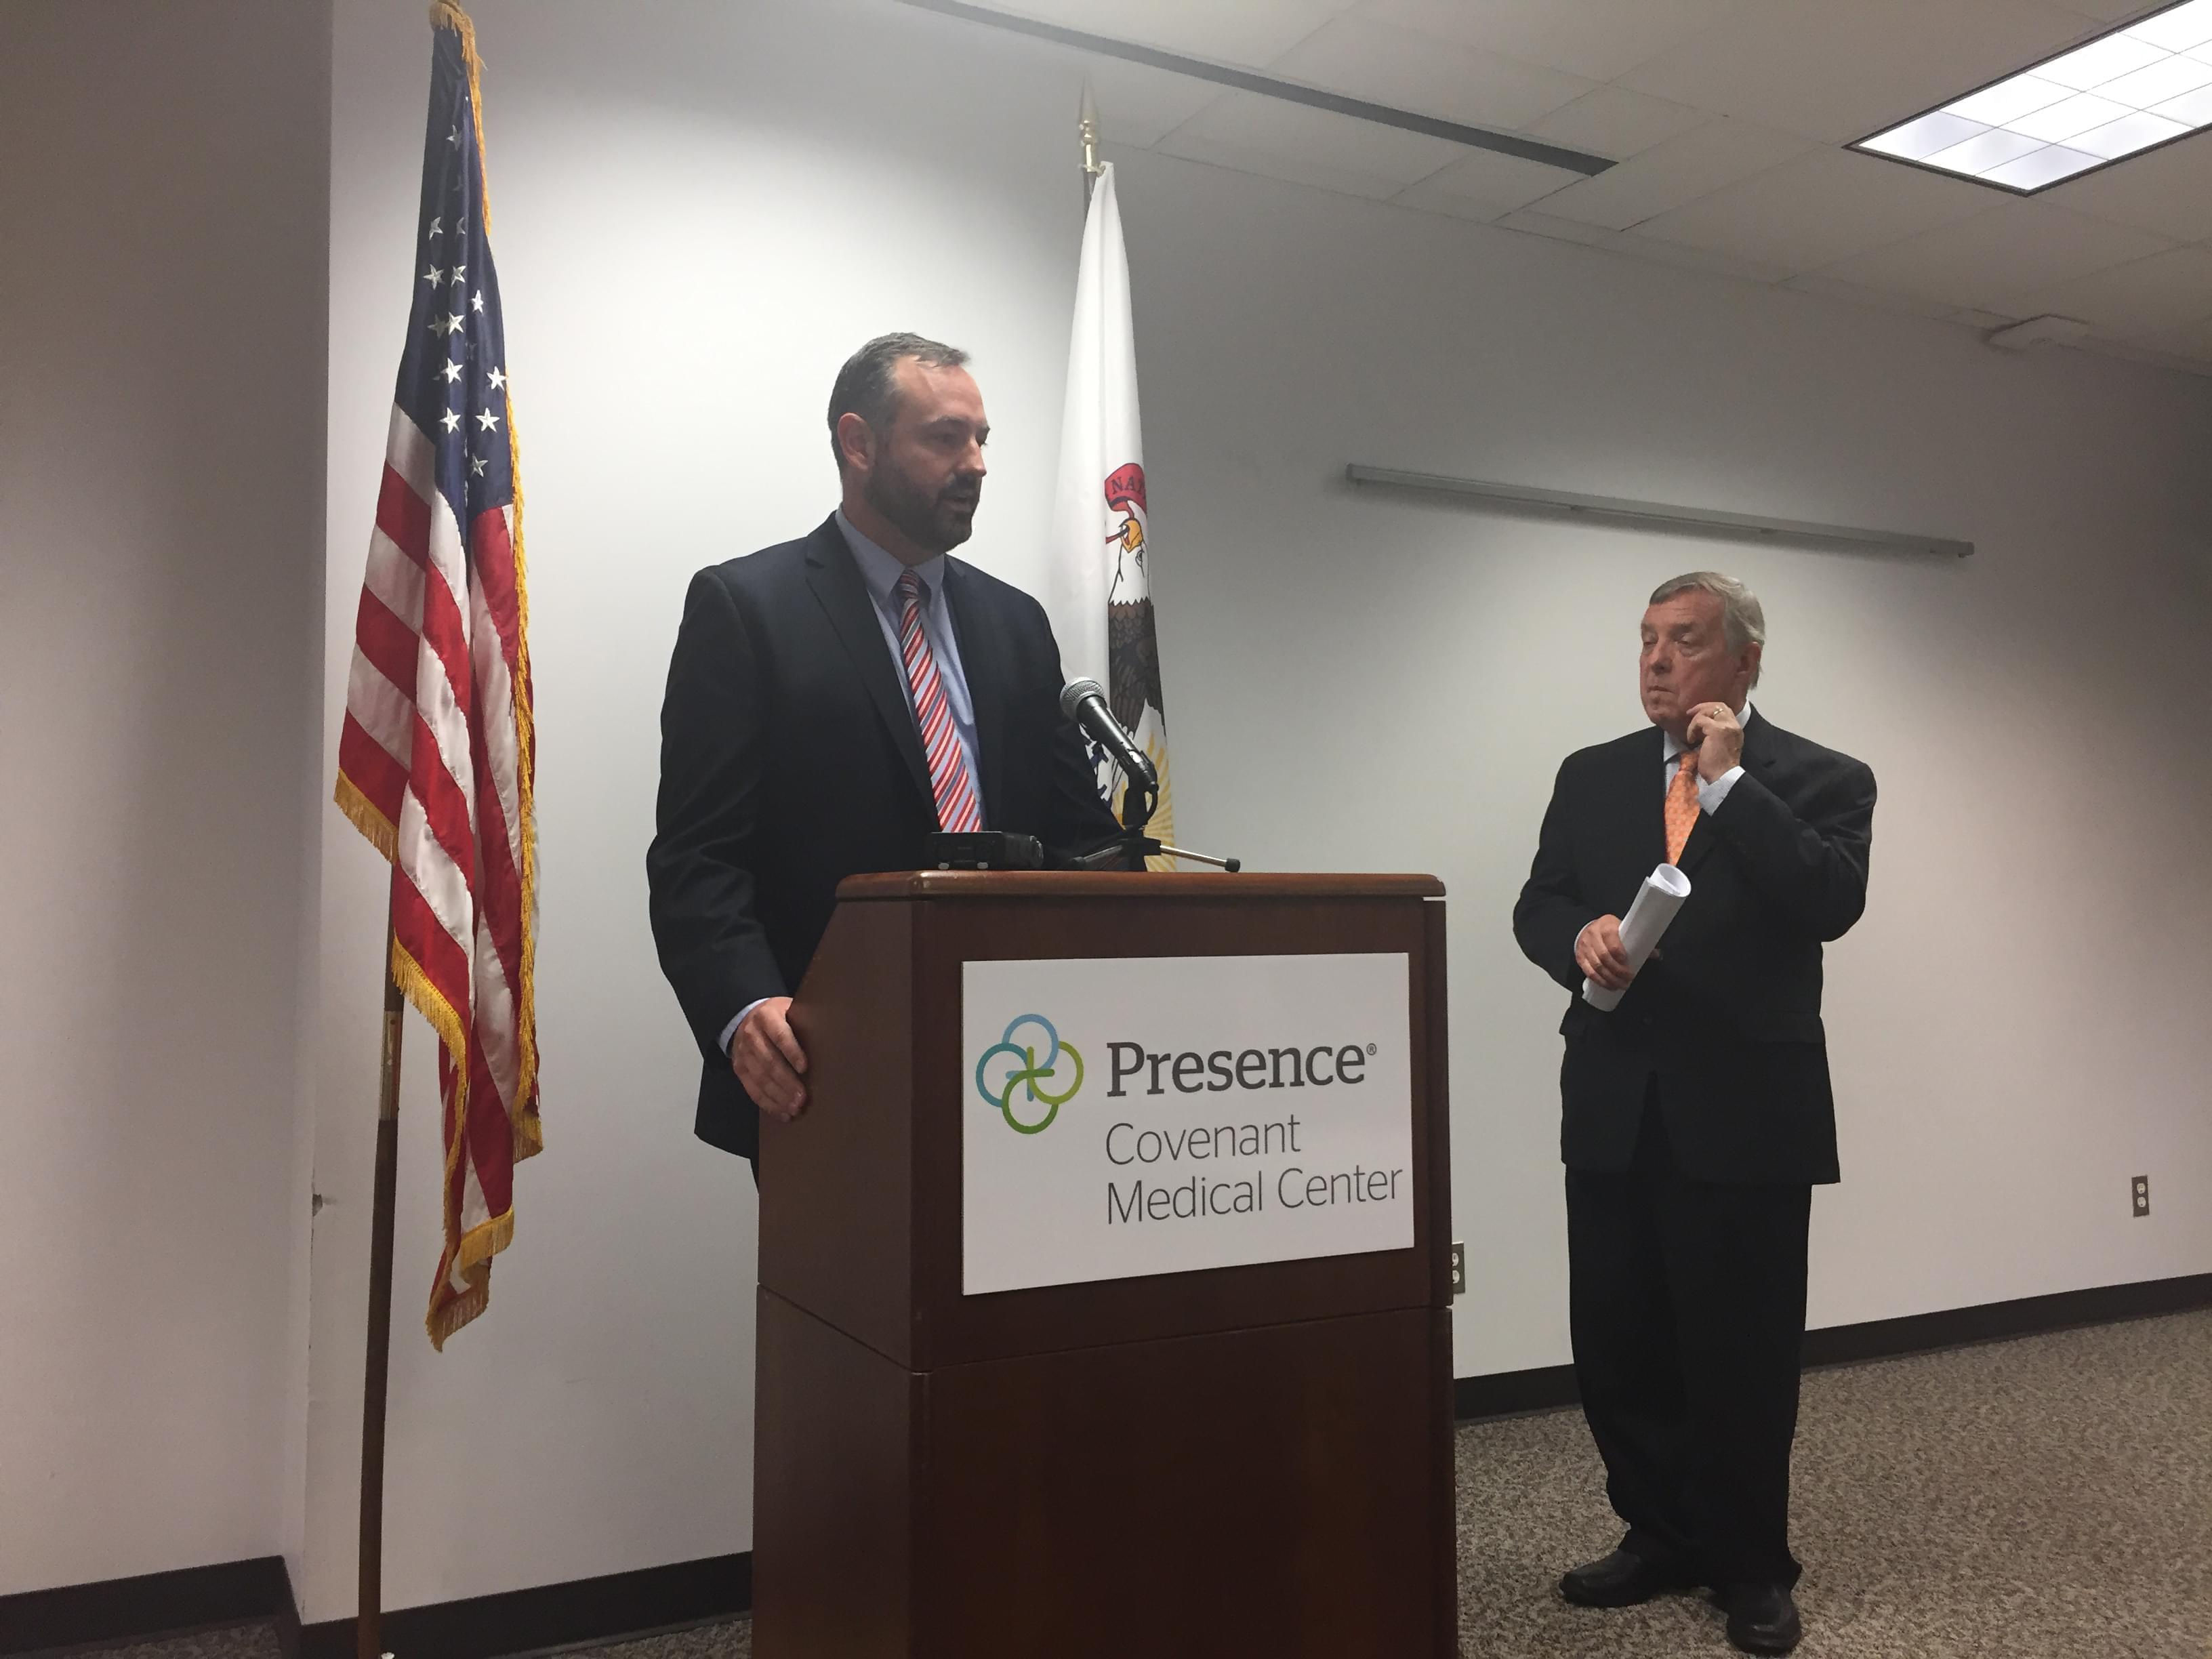 Jeremy Flynn (left) of the Illinois Health and Hospital Association with U.S. Senator Dick Durbin at a news conference in Urbana.